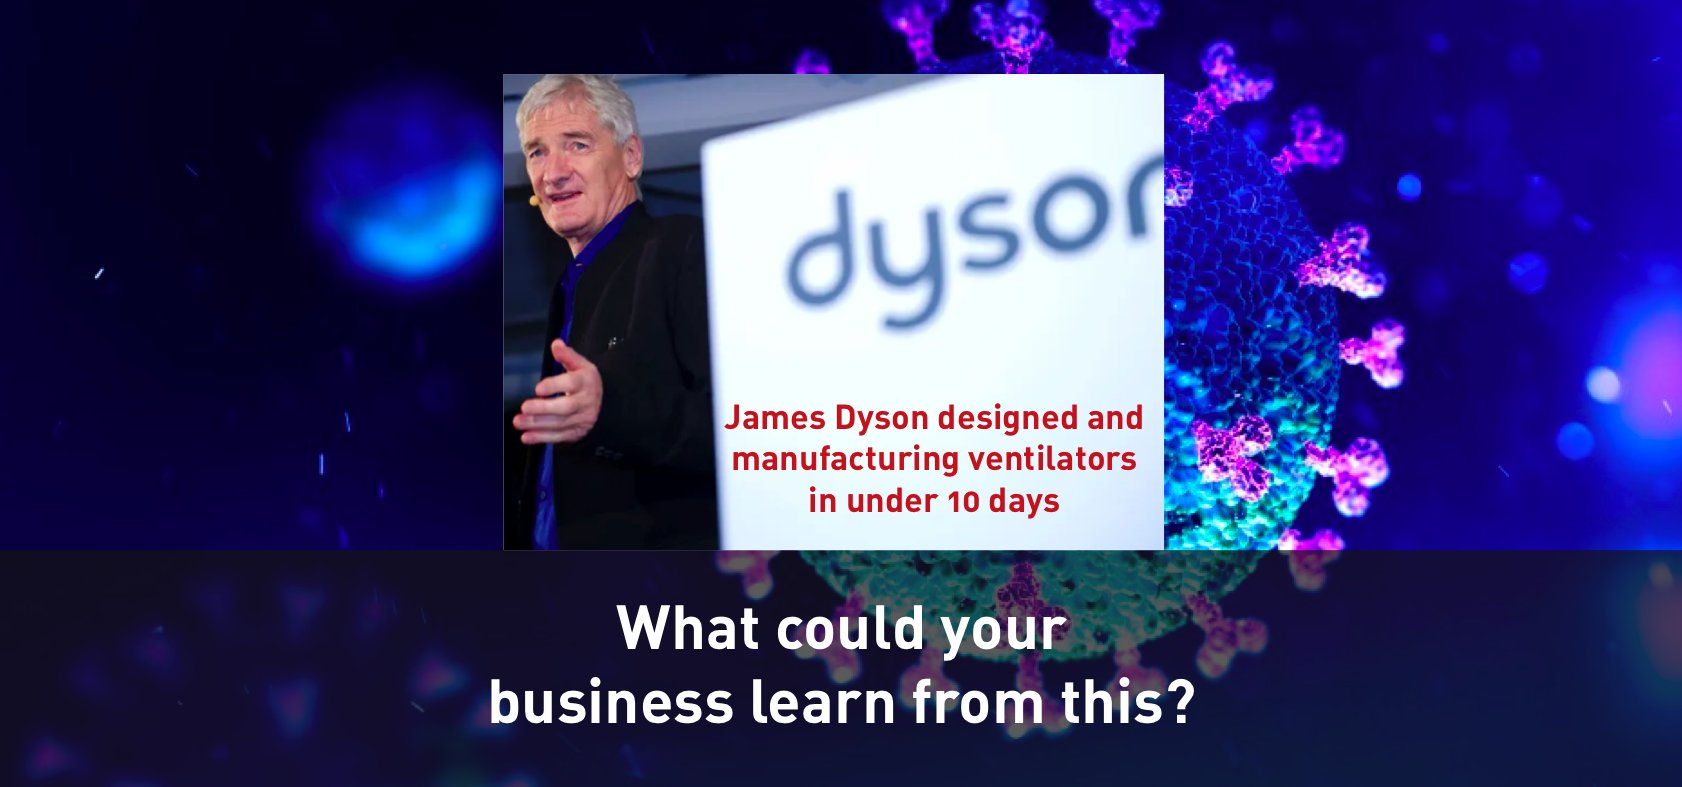 James Dyson designed and started manufacturing ventilators in under 10 days